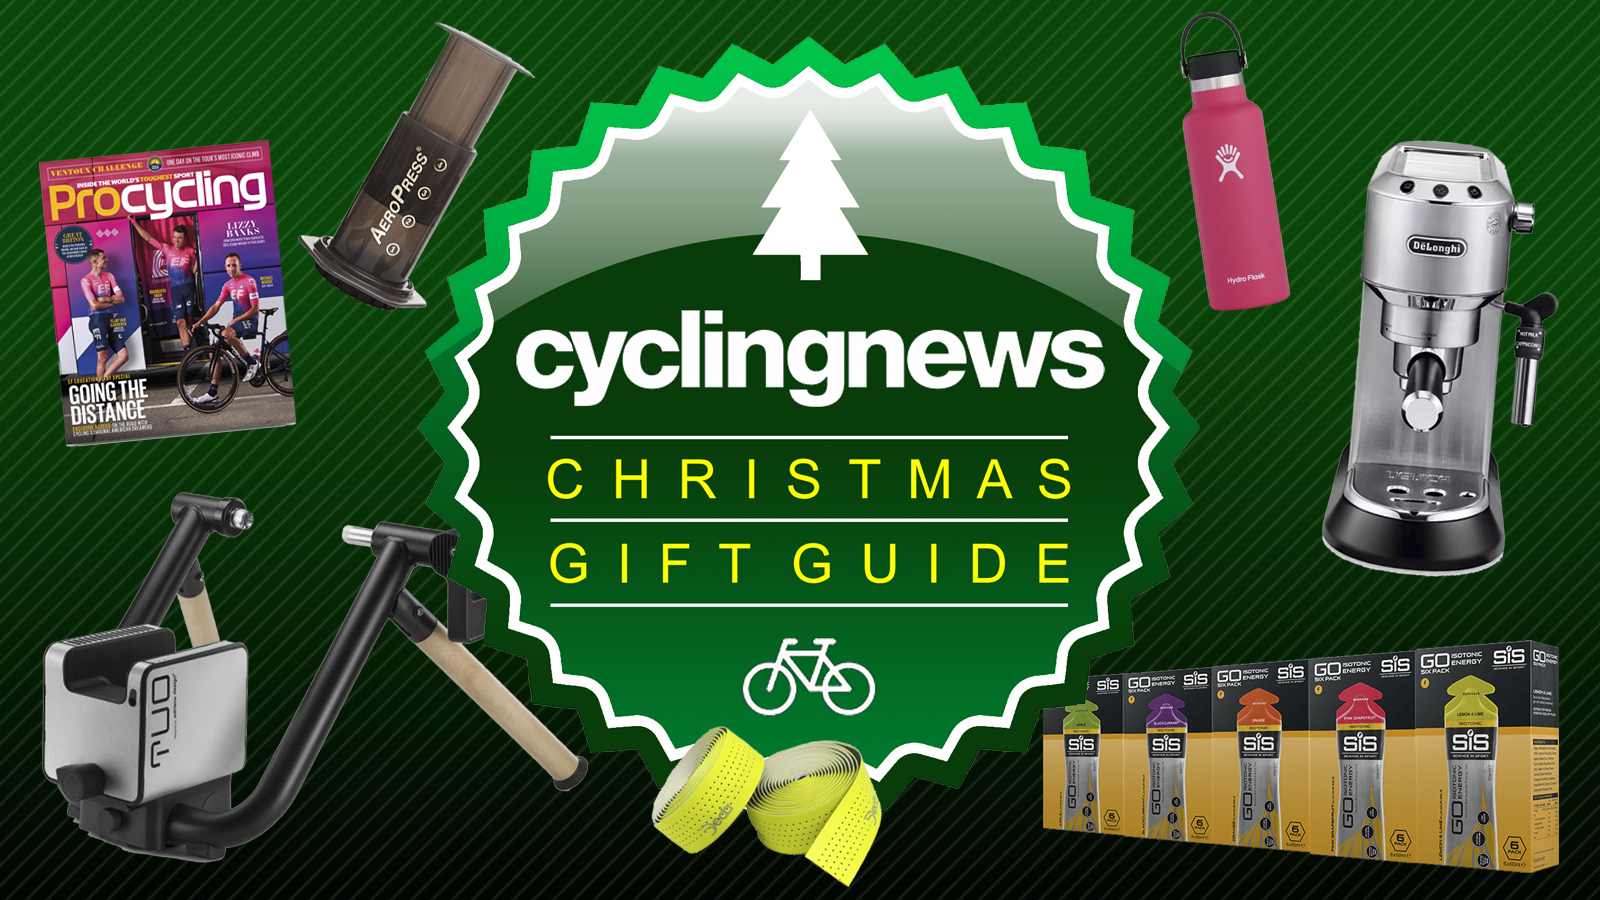 Best gifts for cyclists this Christmas